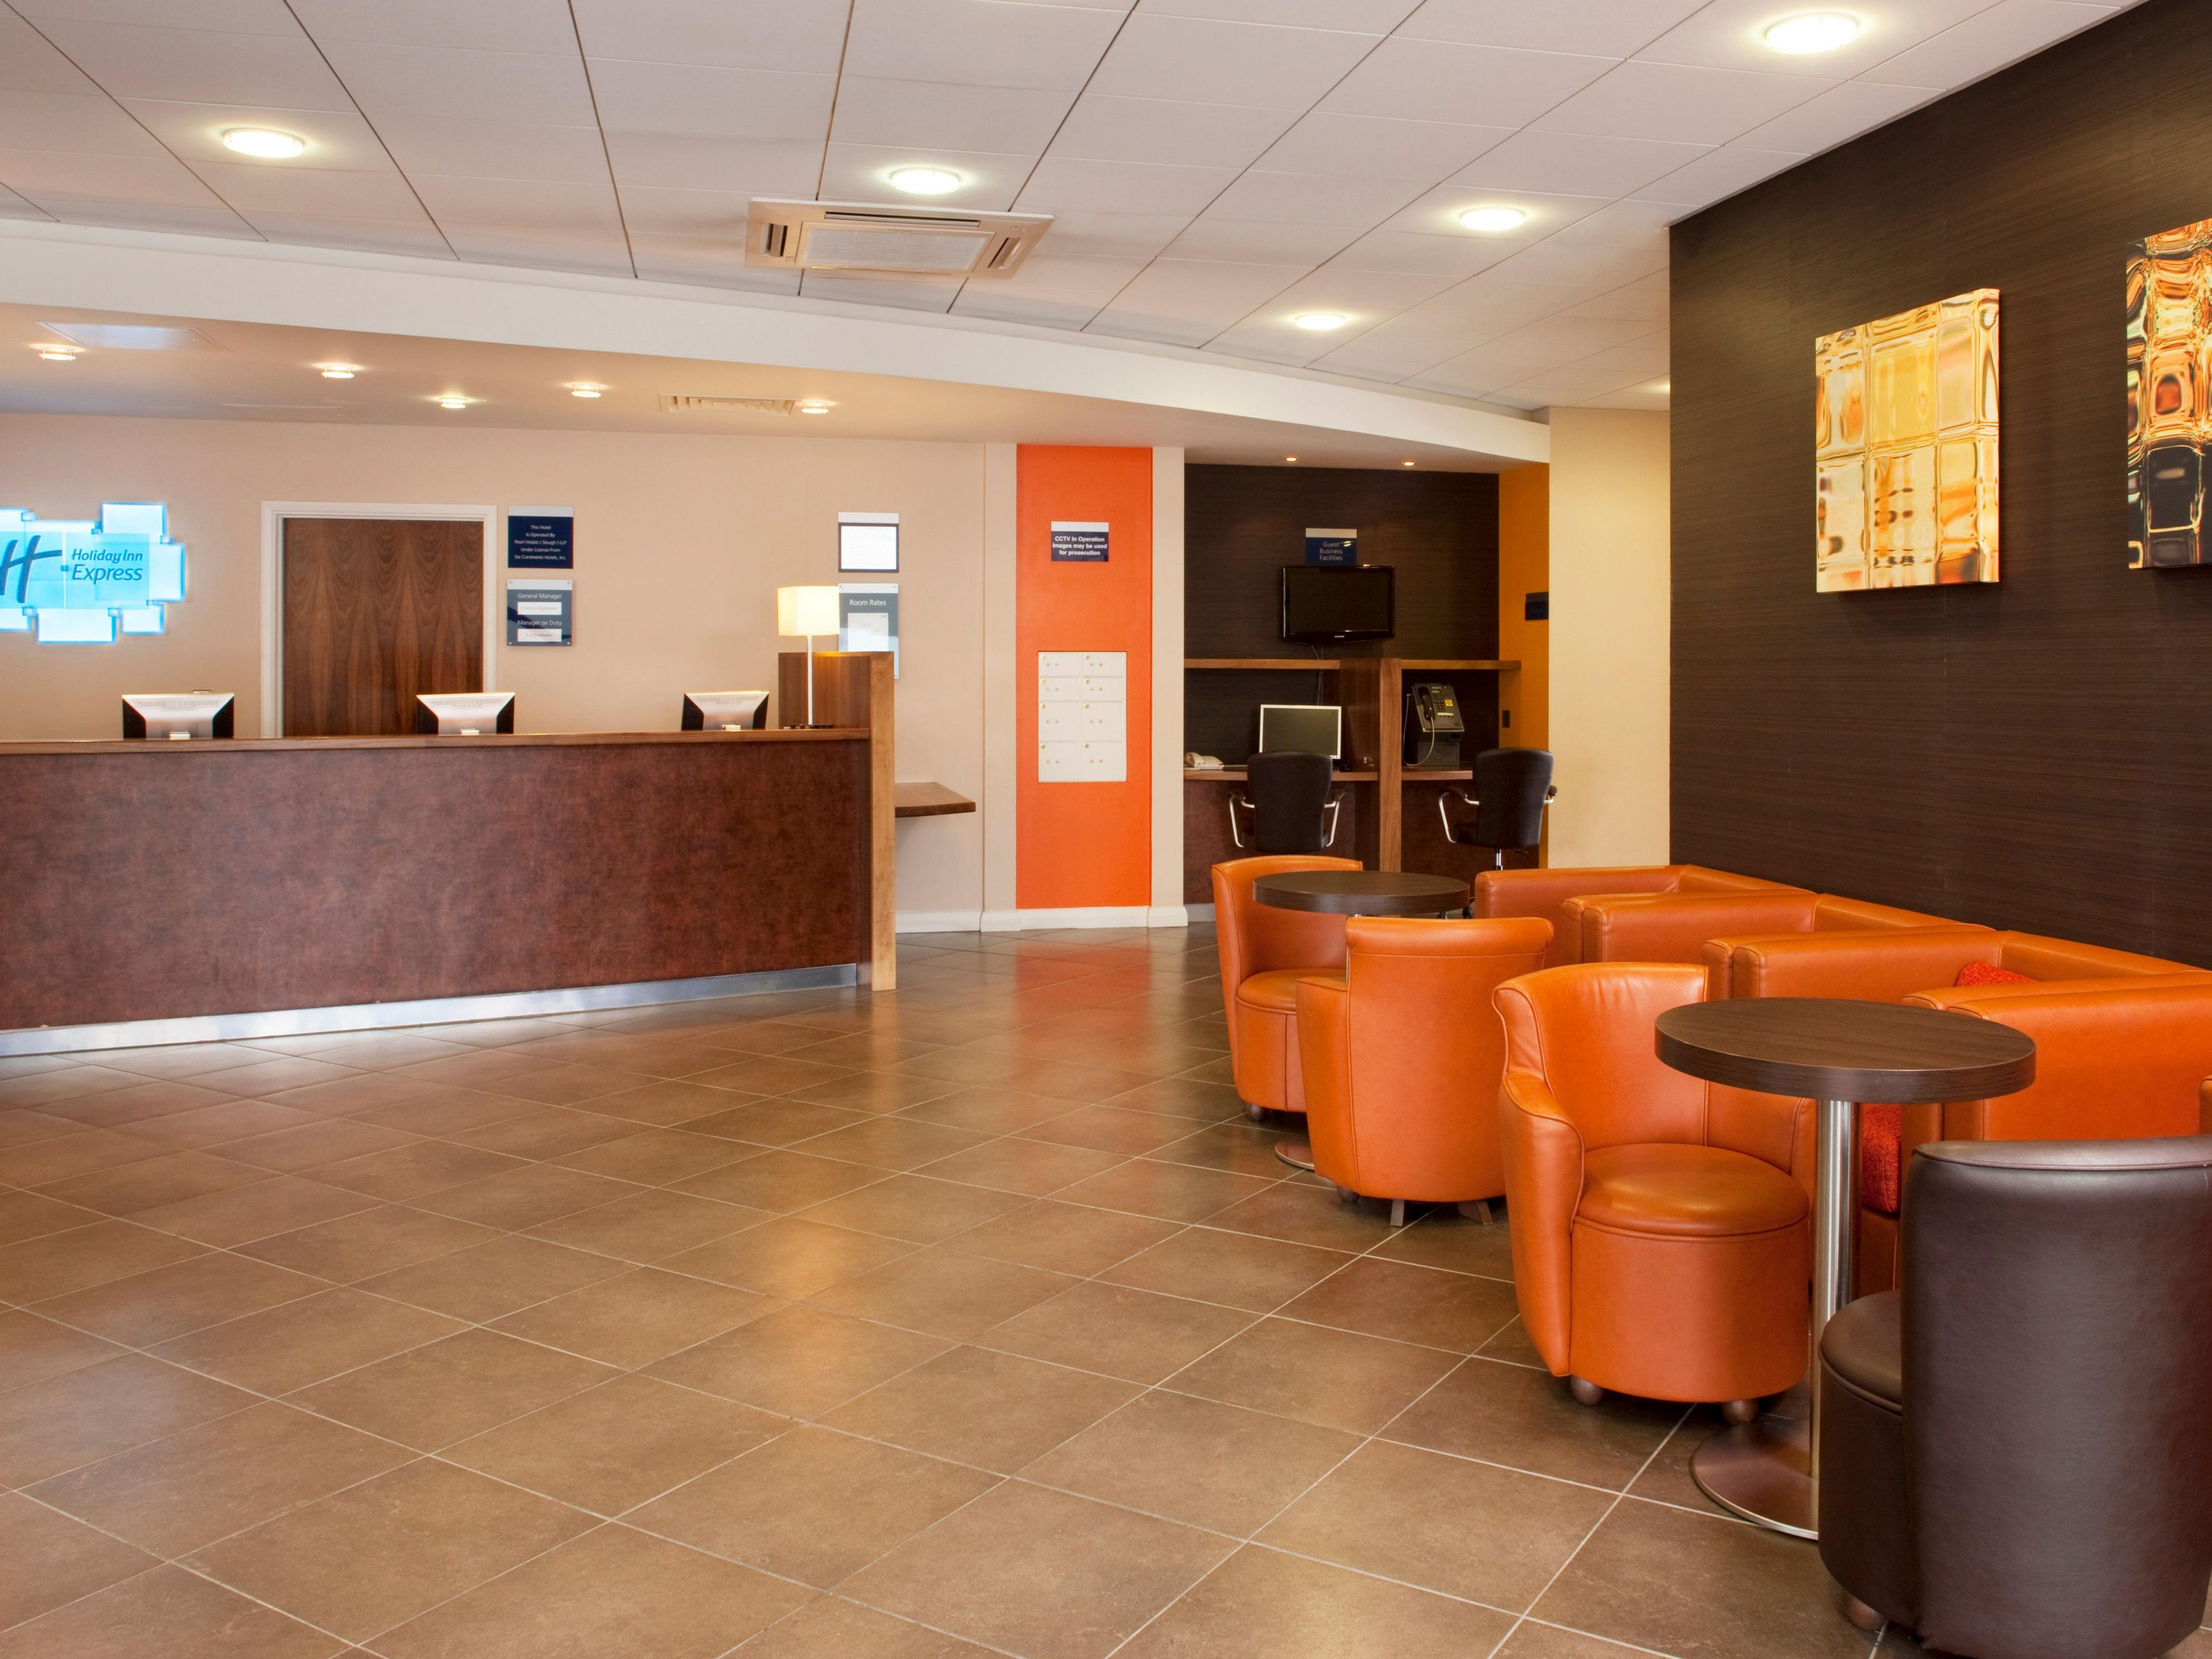 Welcome to the Holiday Inn Express Slough